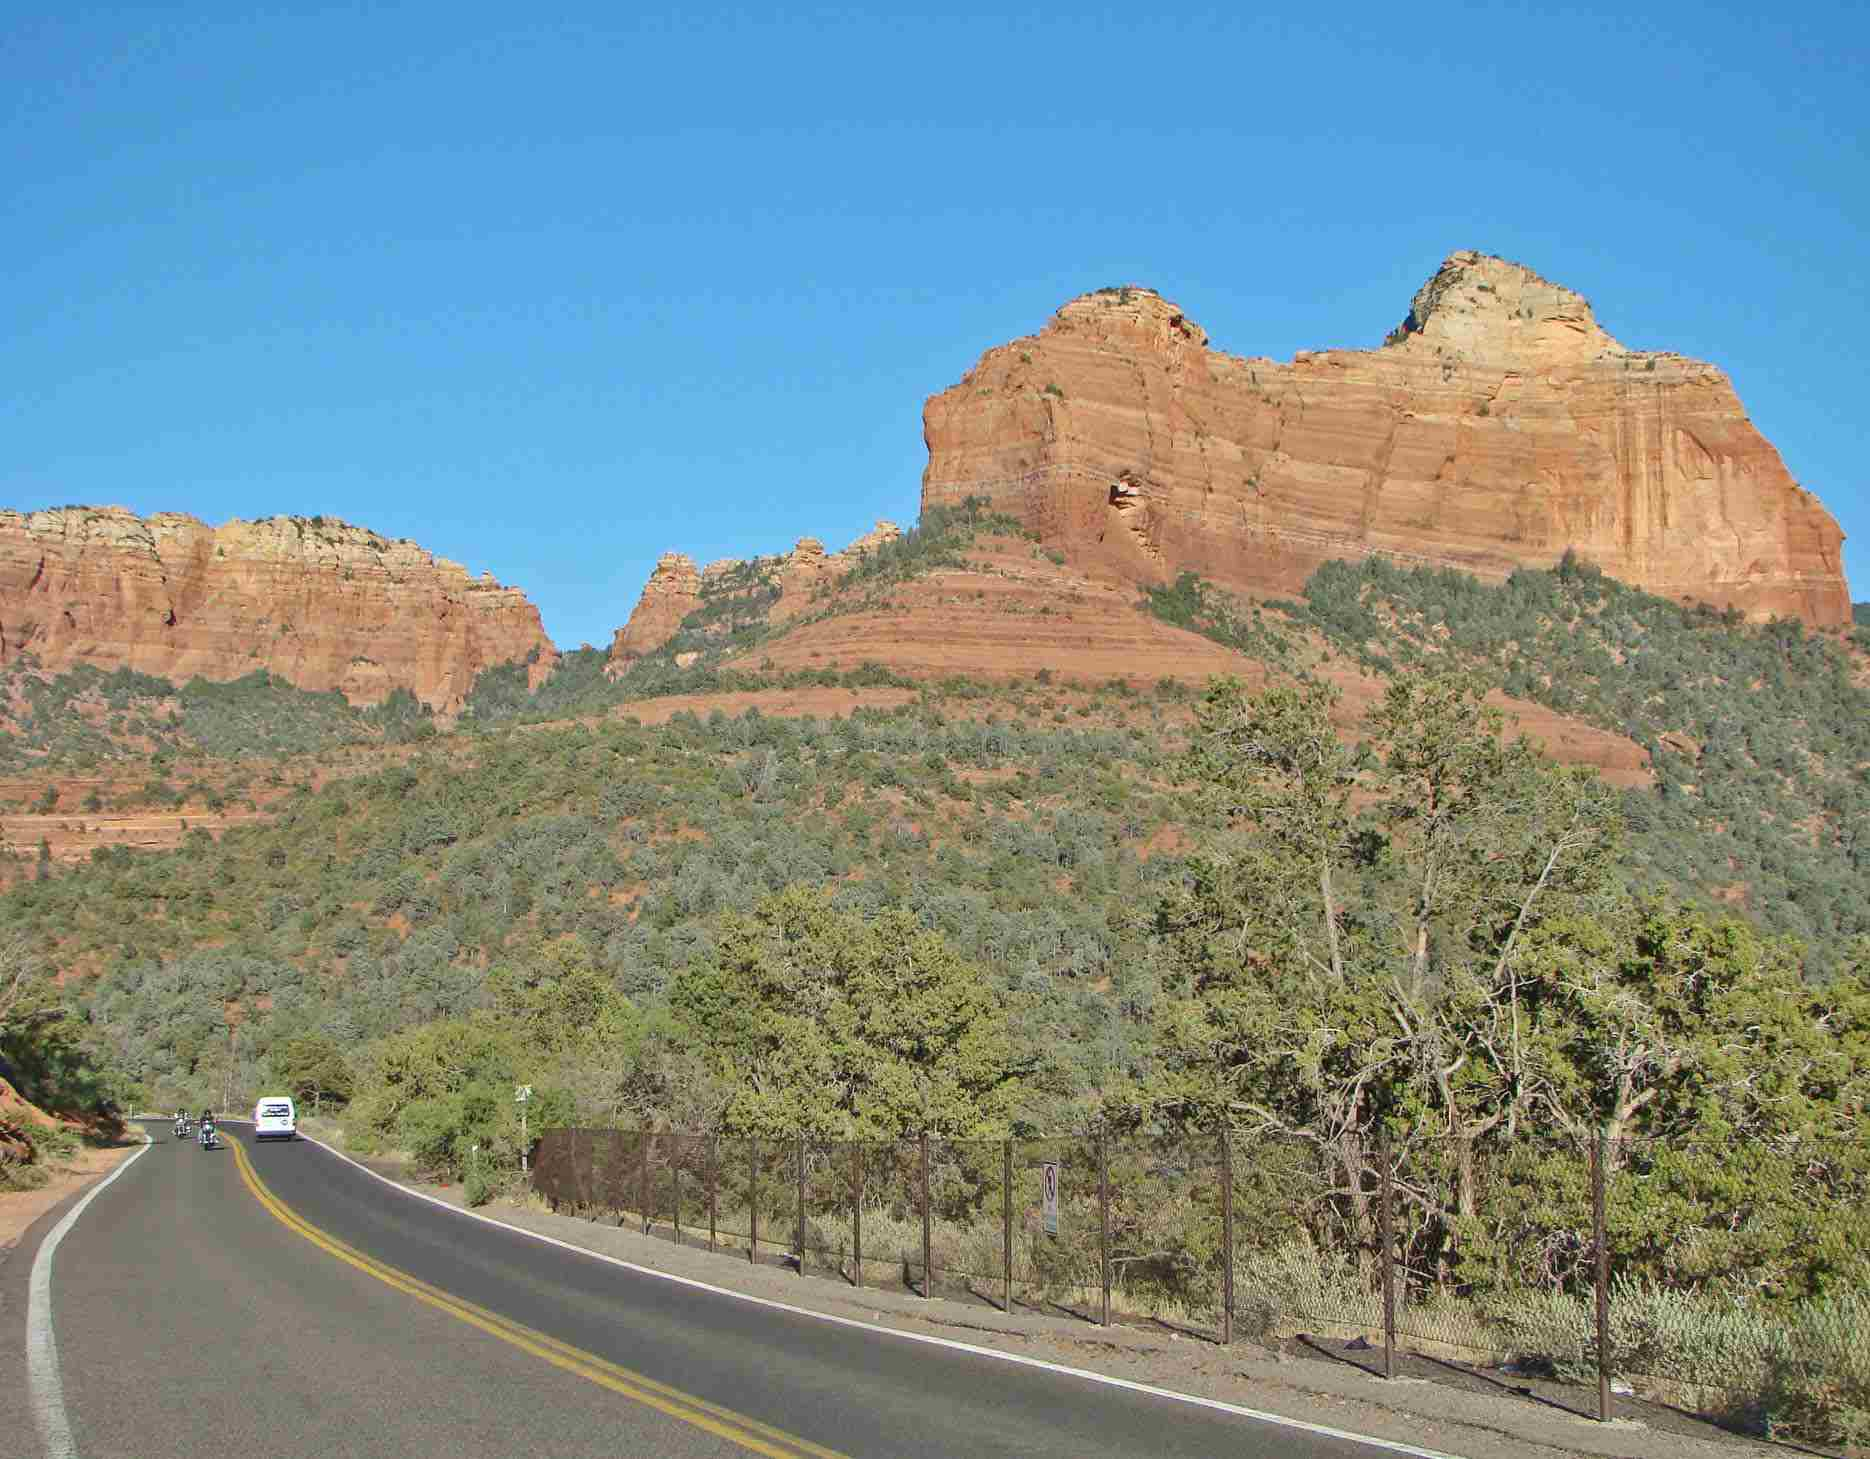 Travelers enjoy the sights along scenic Arizona Route 89A.